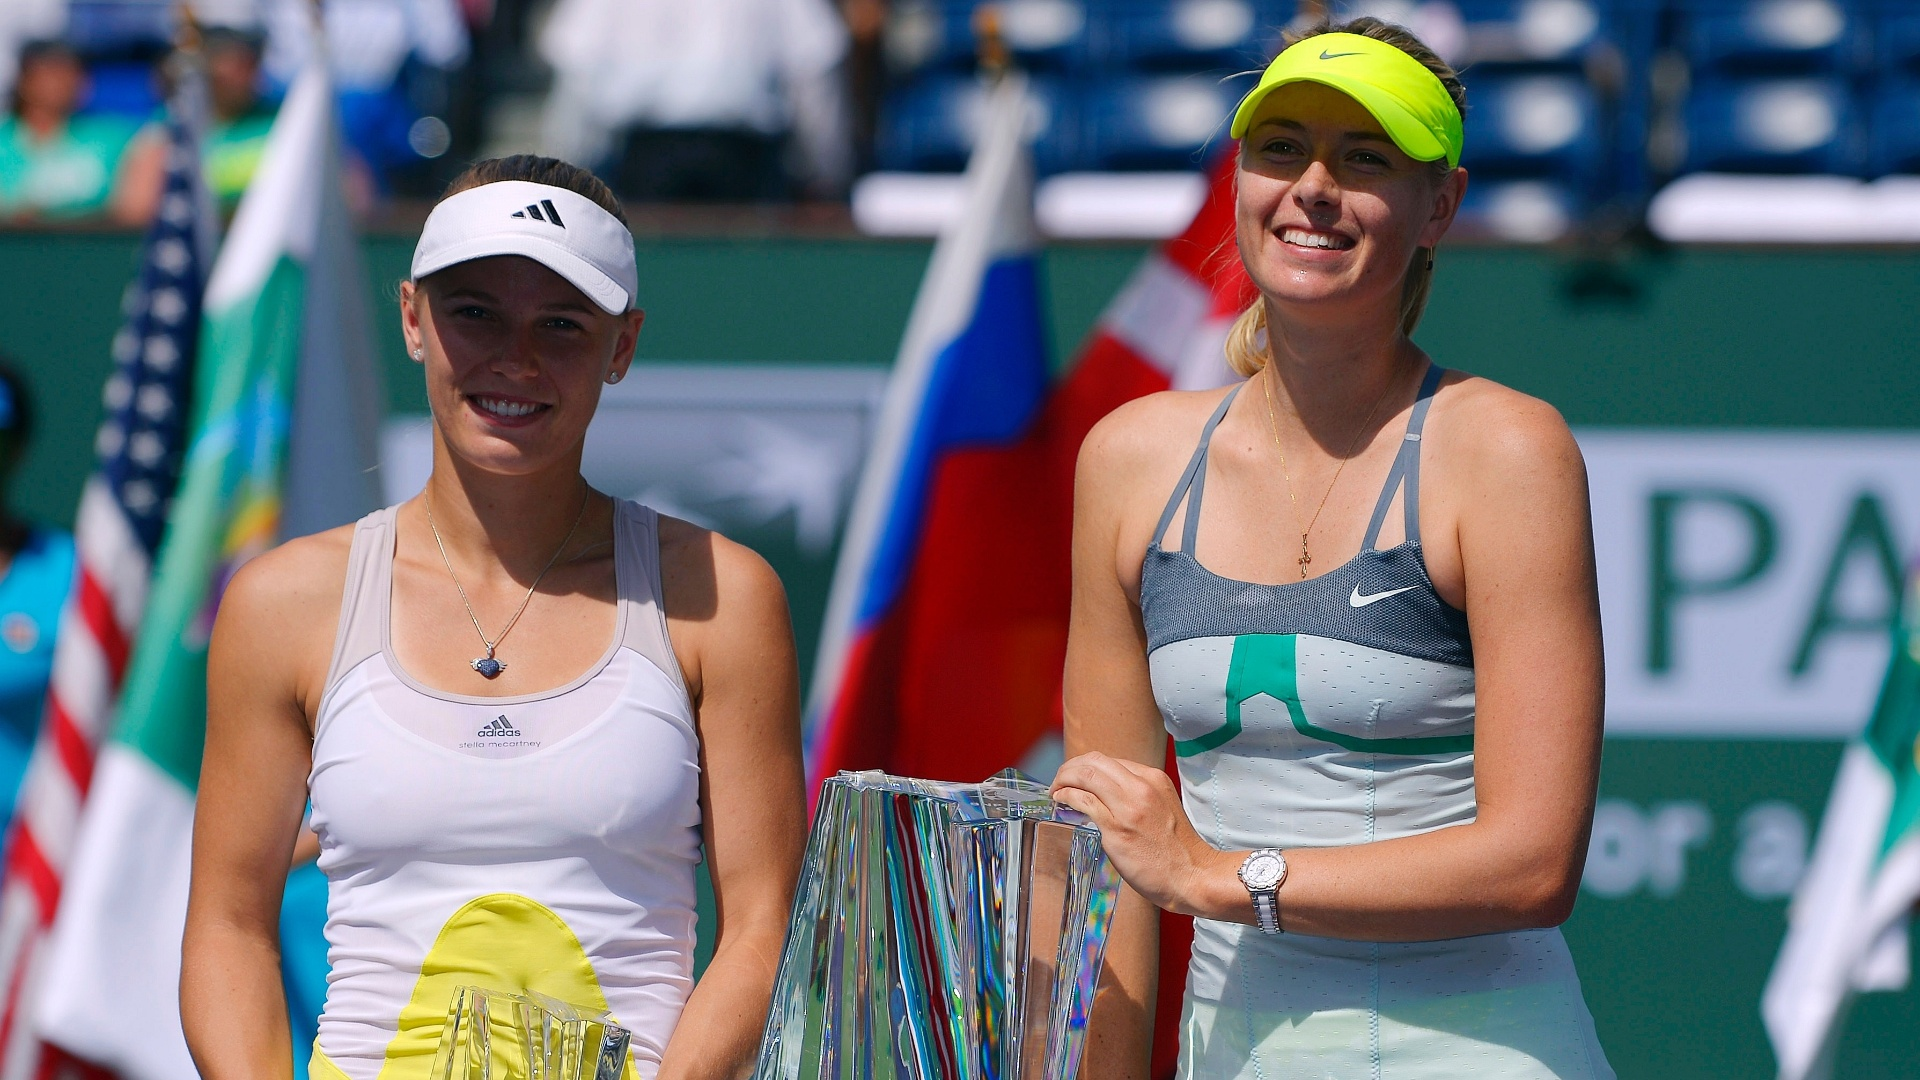 17.mar.2013 - Sharapova e Wozniacki posam para fotos depois da final em Indian Wells